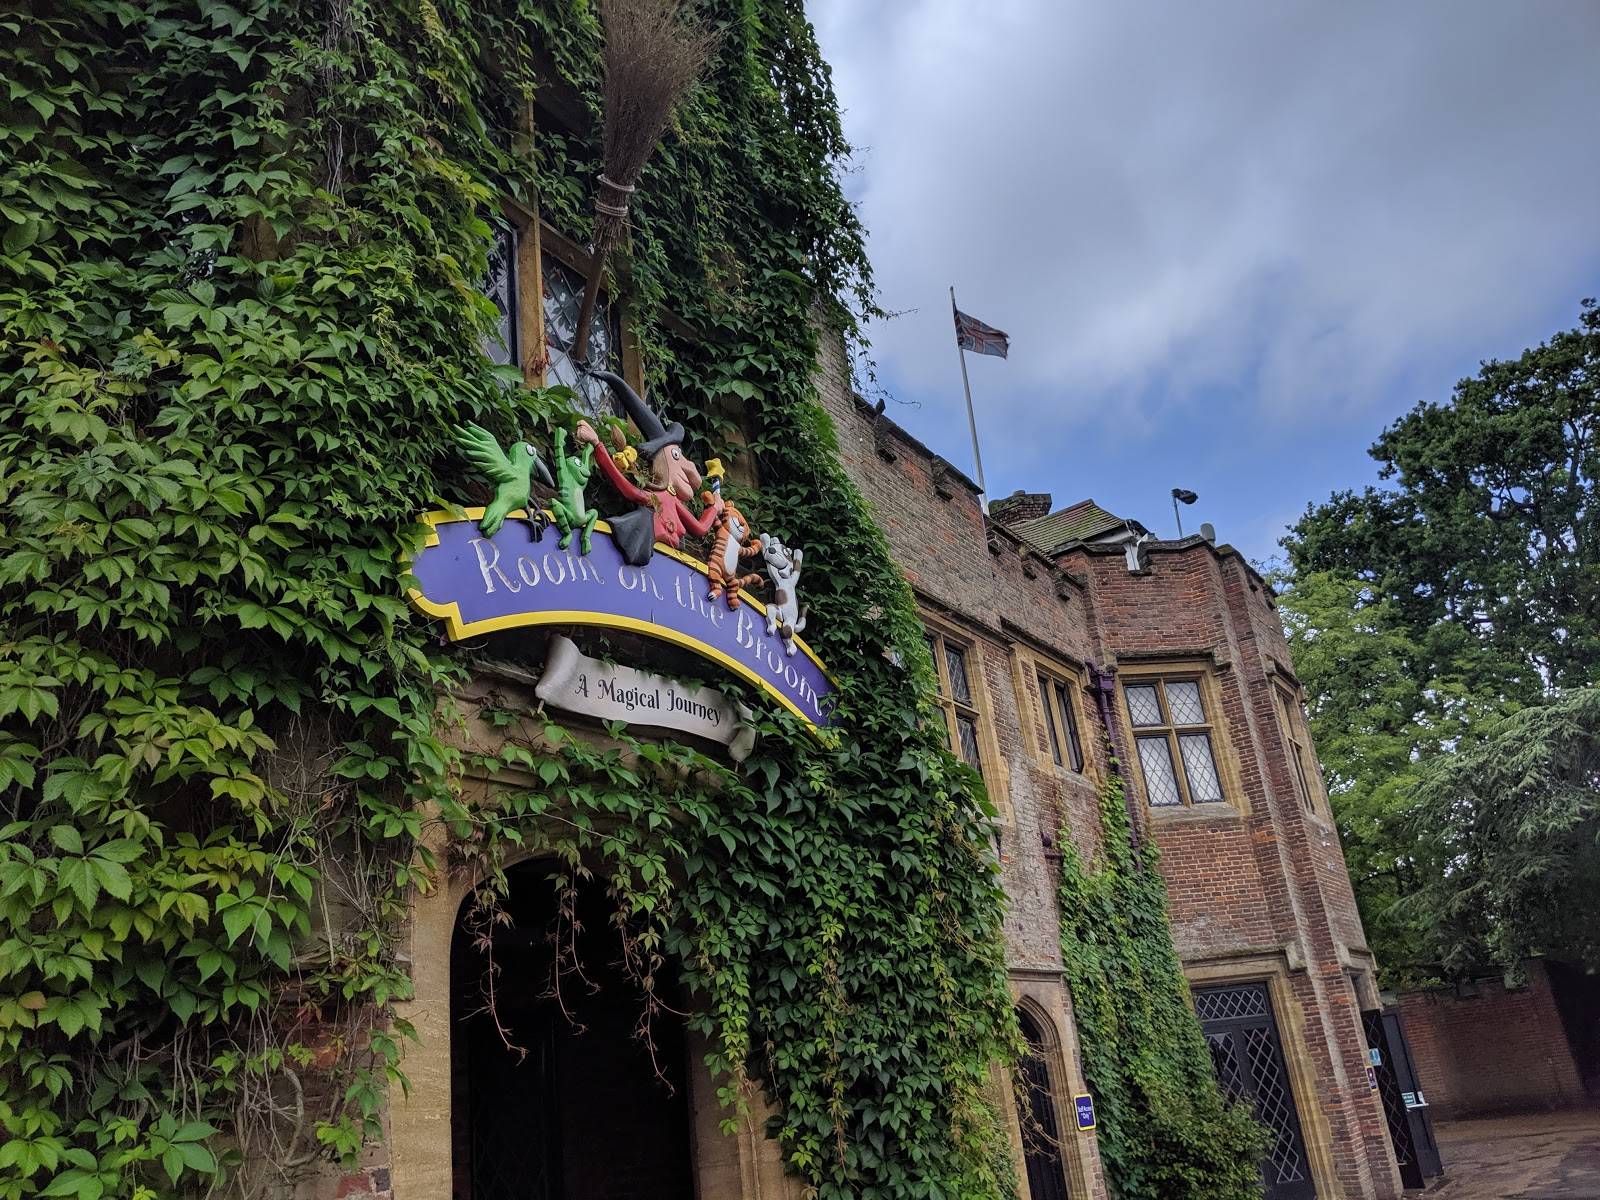 Exploring the Southern Merlin Theme Parks with Tweens  - room on the broom at Chessington